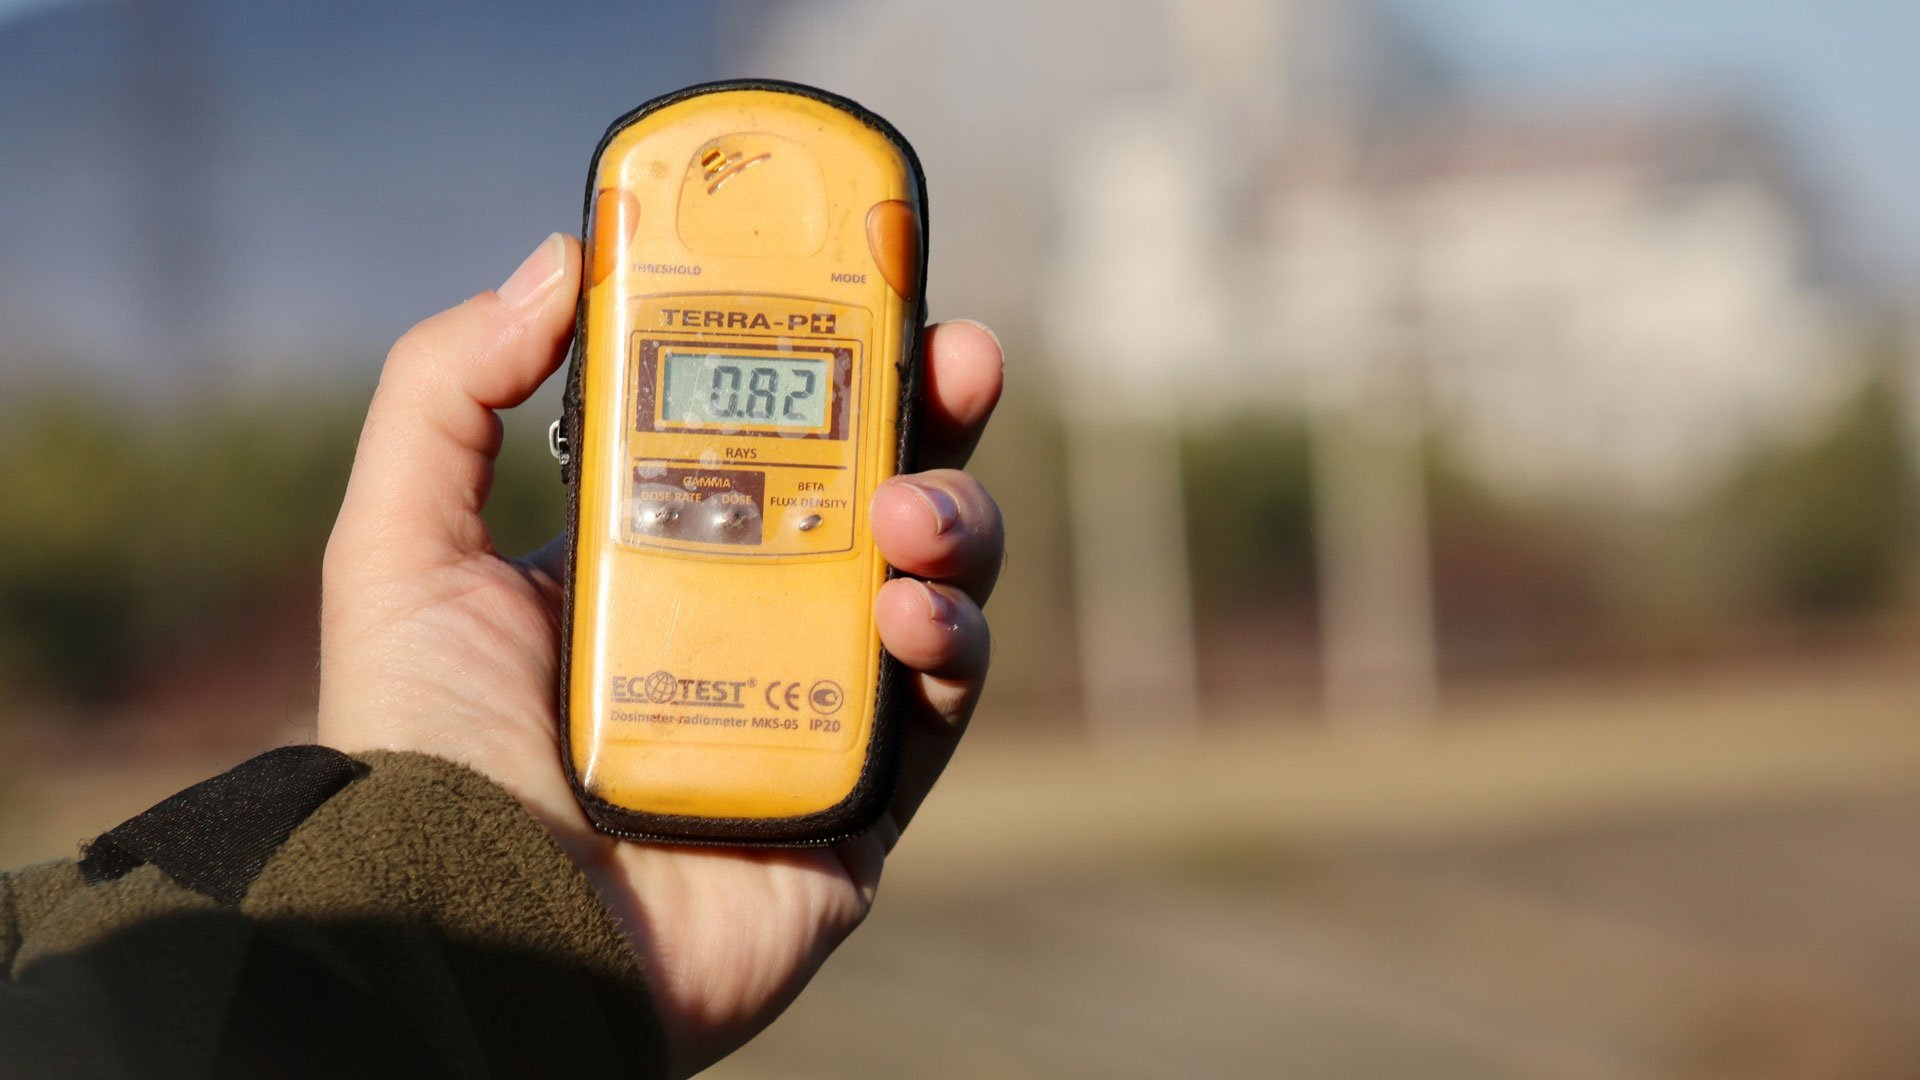 GPS-Unit--What-You-Should-Look-For-to-Buy-It-on-99insight